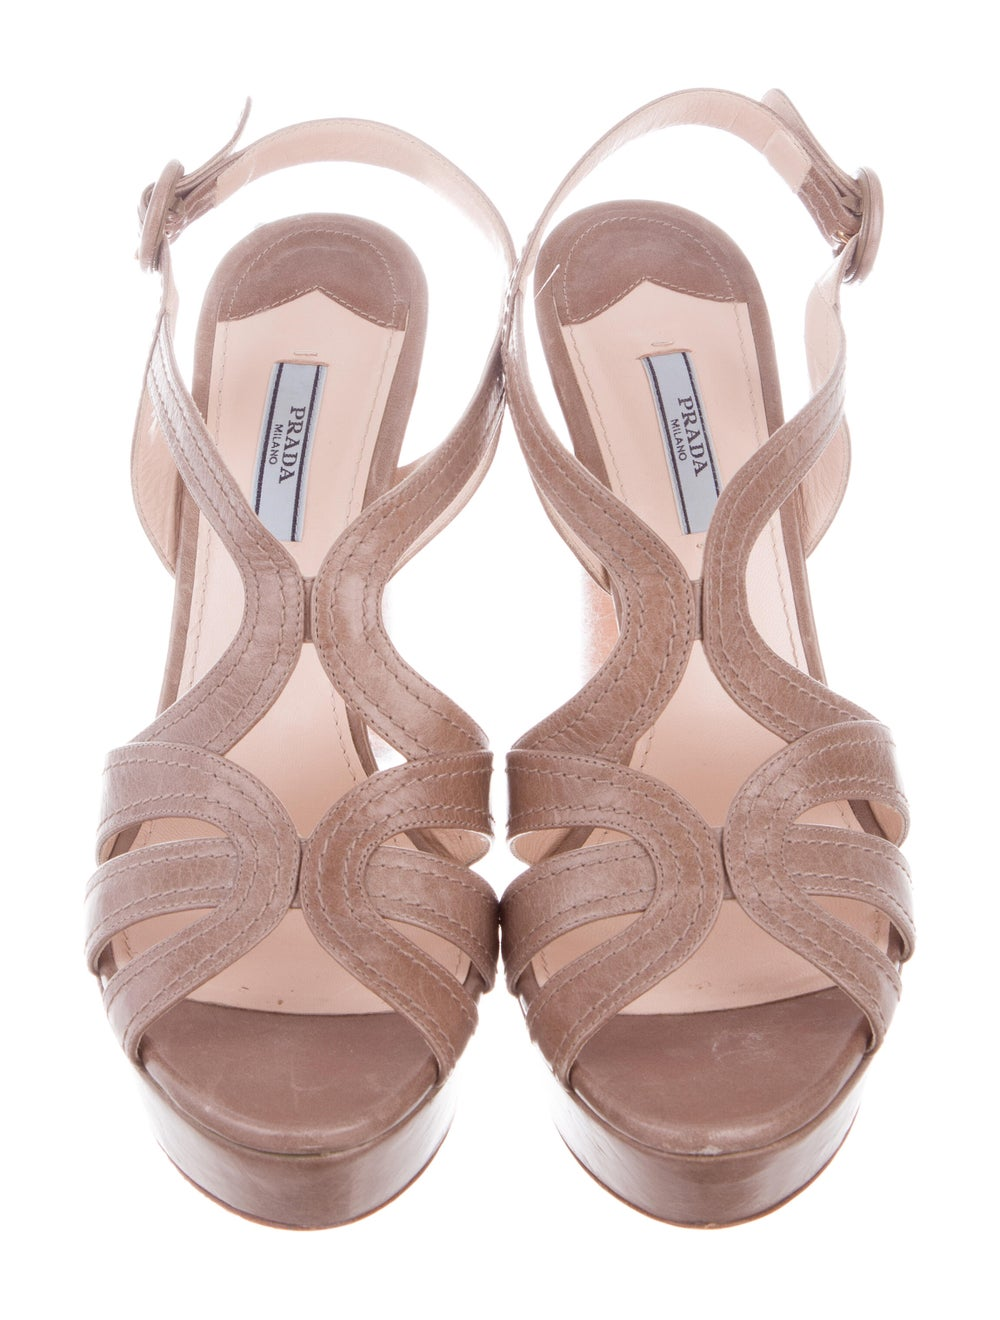 Prada Leather Platform Sandals - image 3